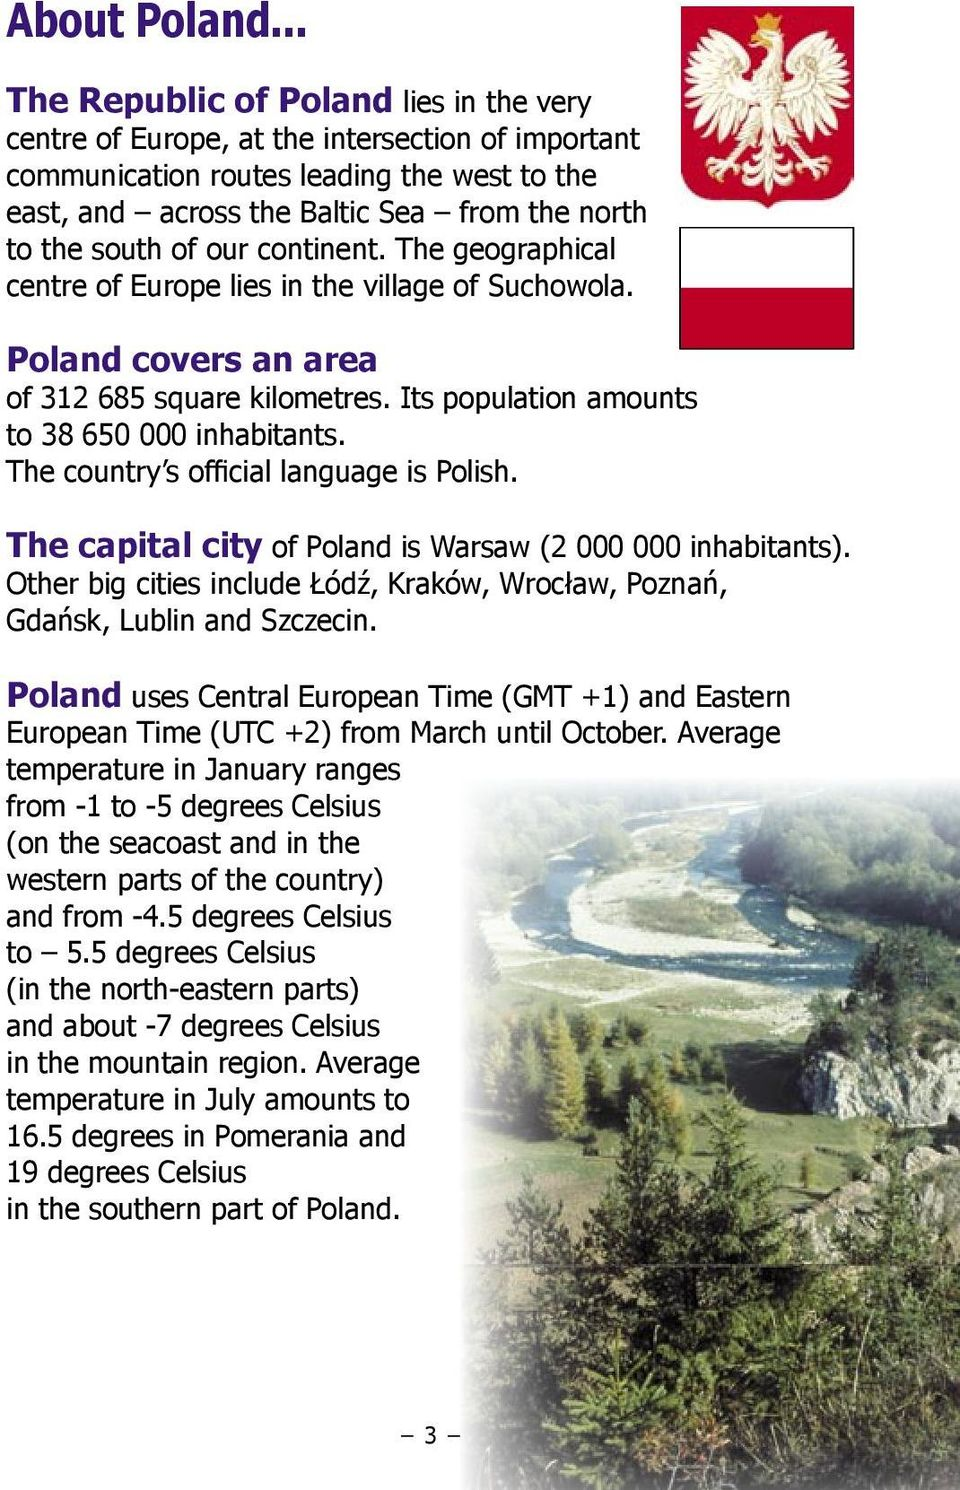 of our continent. The geographical centre of Europe lies in the village of Suchowola. Poland covers an area of 312 685 square kilometres. Its population amounts to 38 650 000 inhabitants.